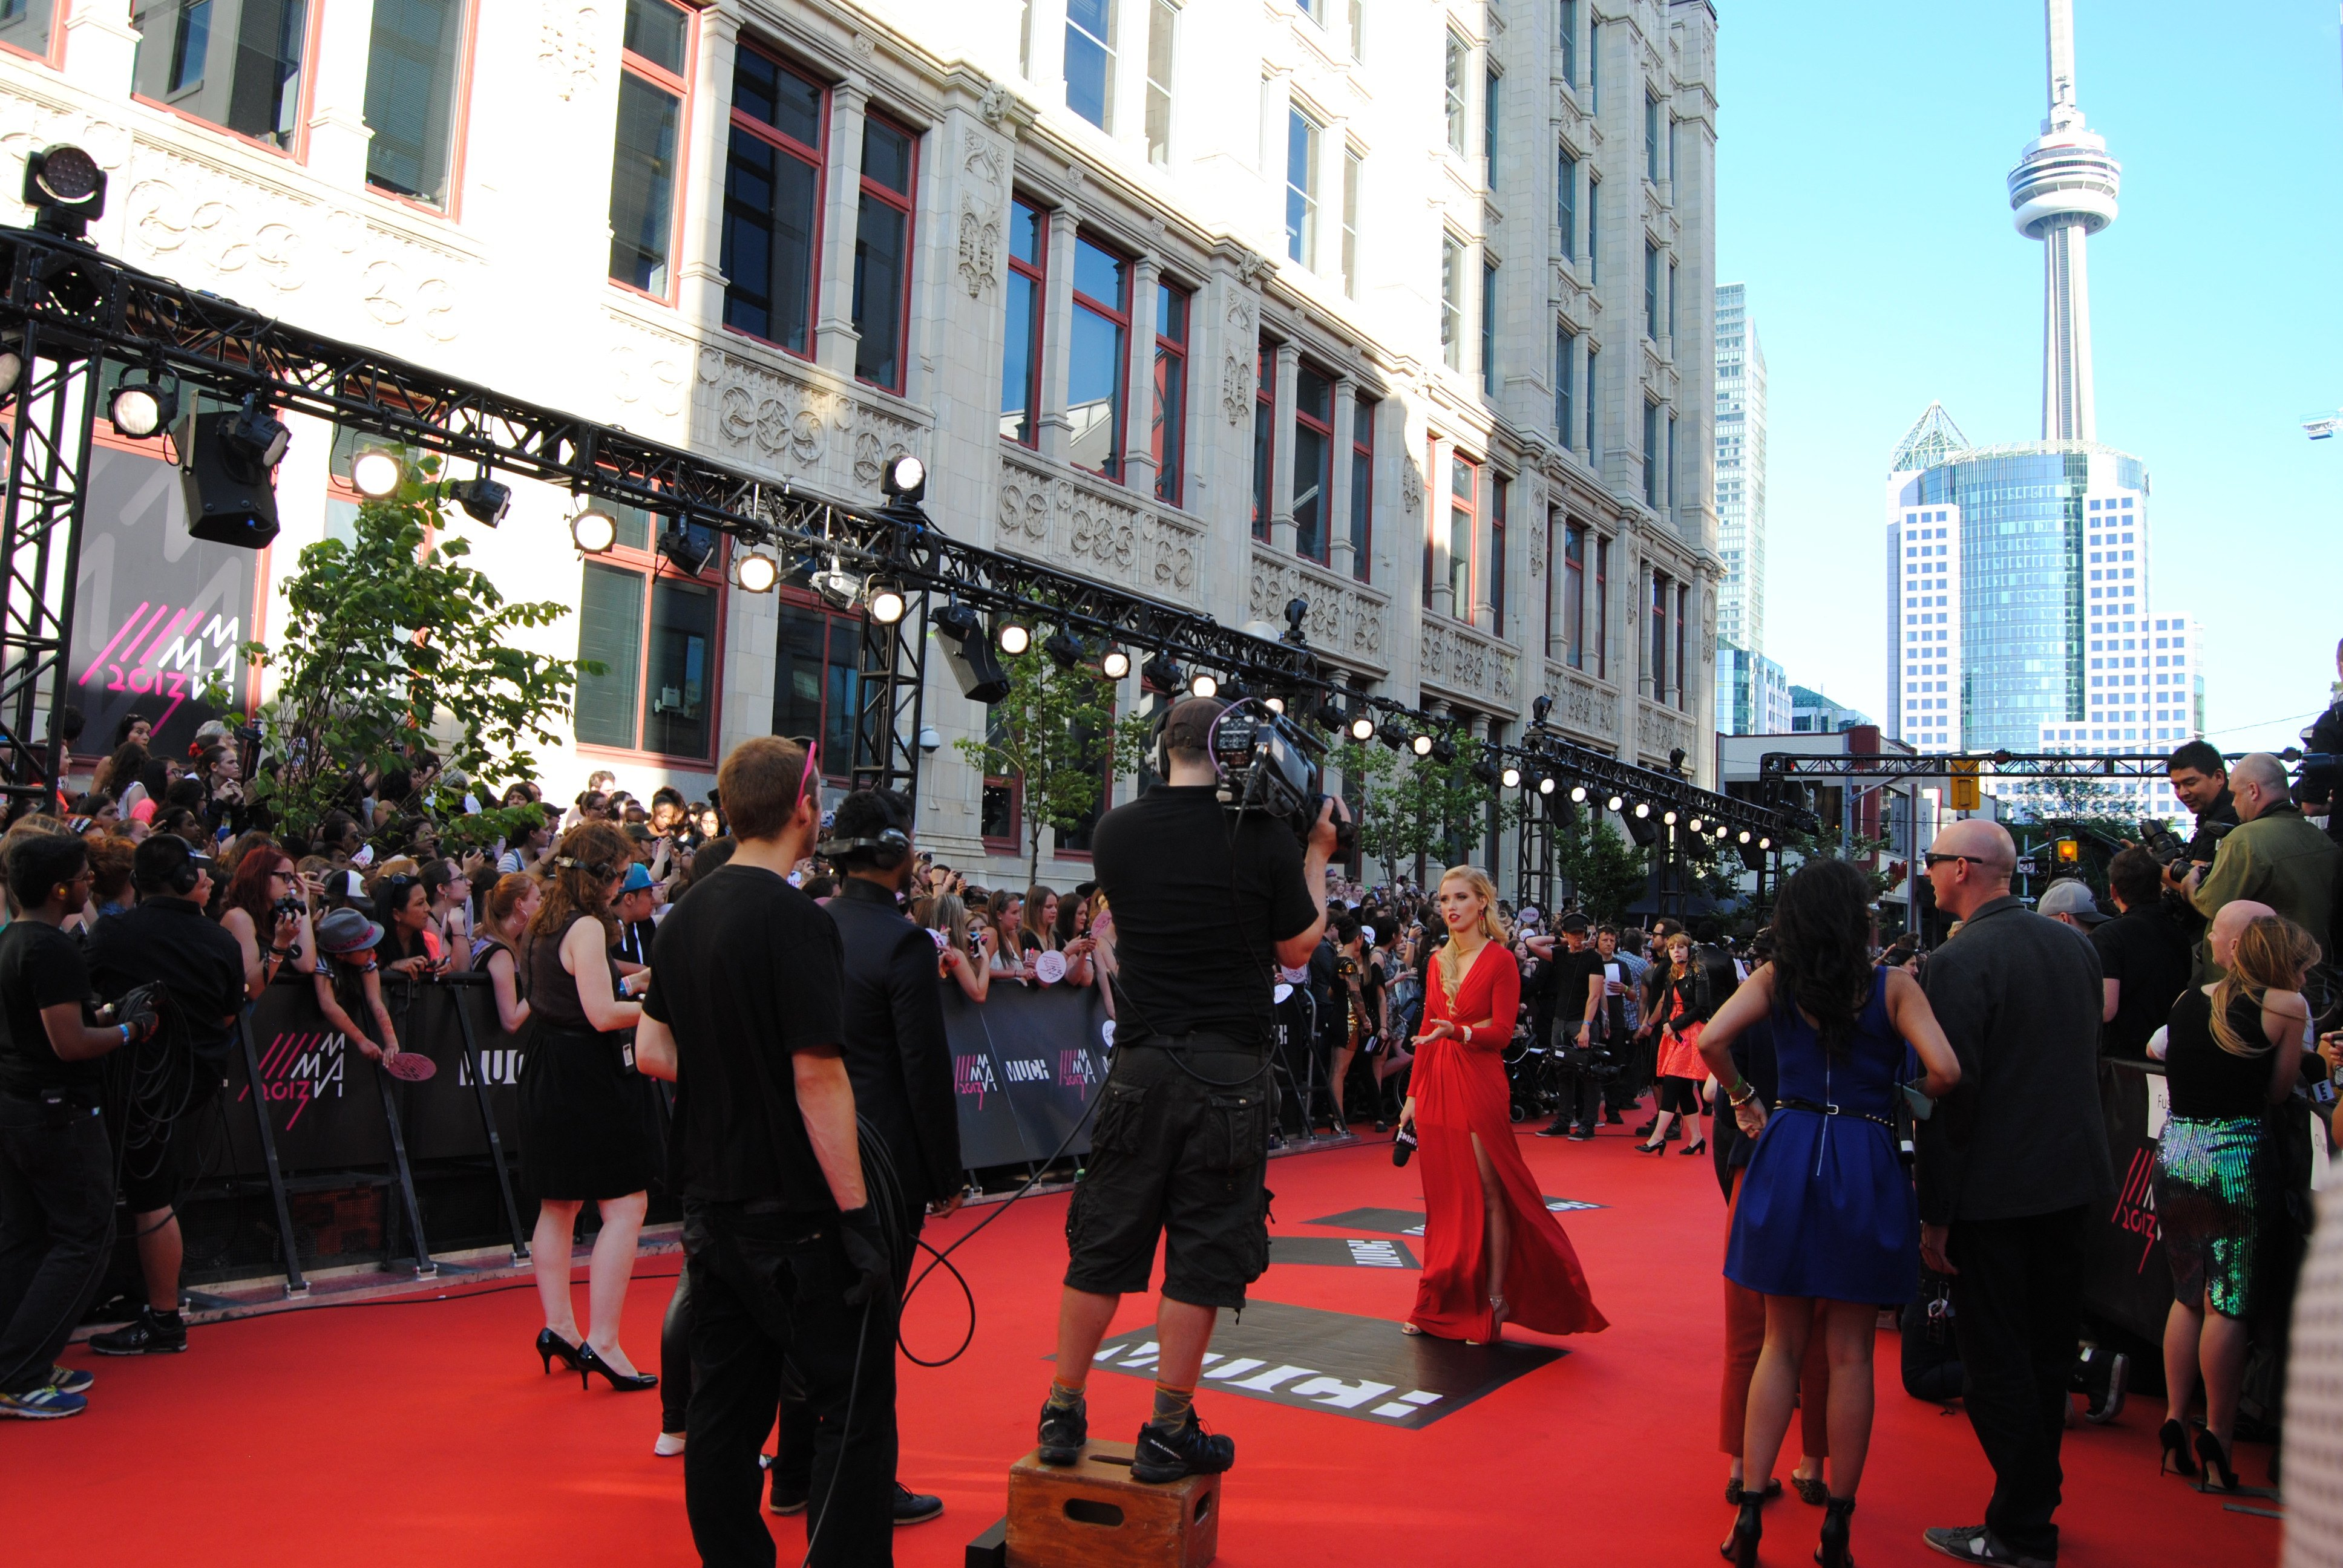 MuchMusic Video Awards' red carpet - feat. Marianas Trench, Phillip Phillips, Cody Simpson, Ed Sheeran, Avril Lavigne, Kunal Nayyar and more - a place where mermen are rampant and nominees let loose